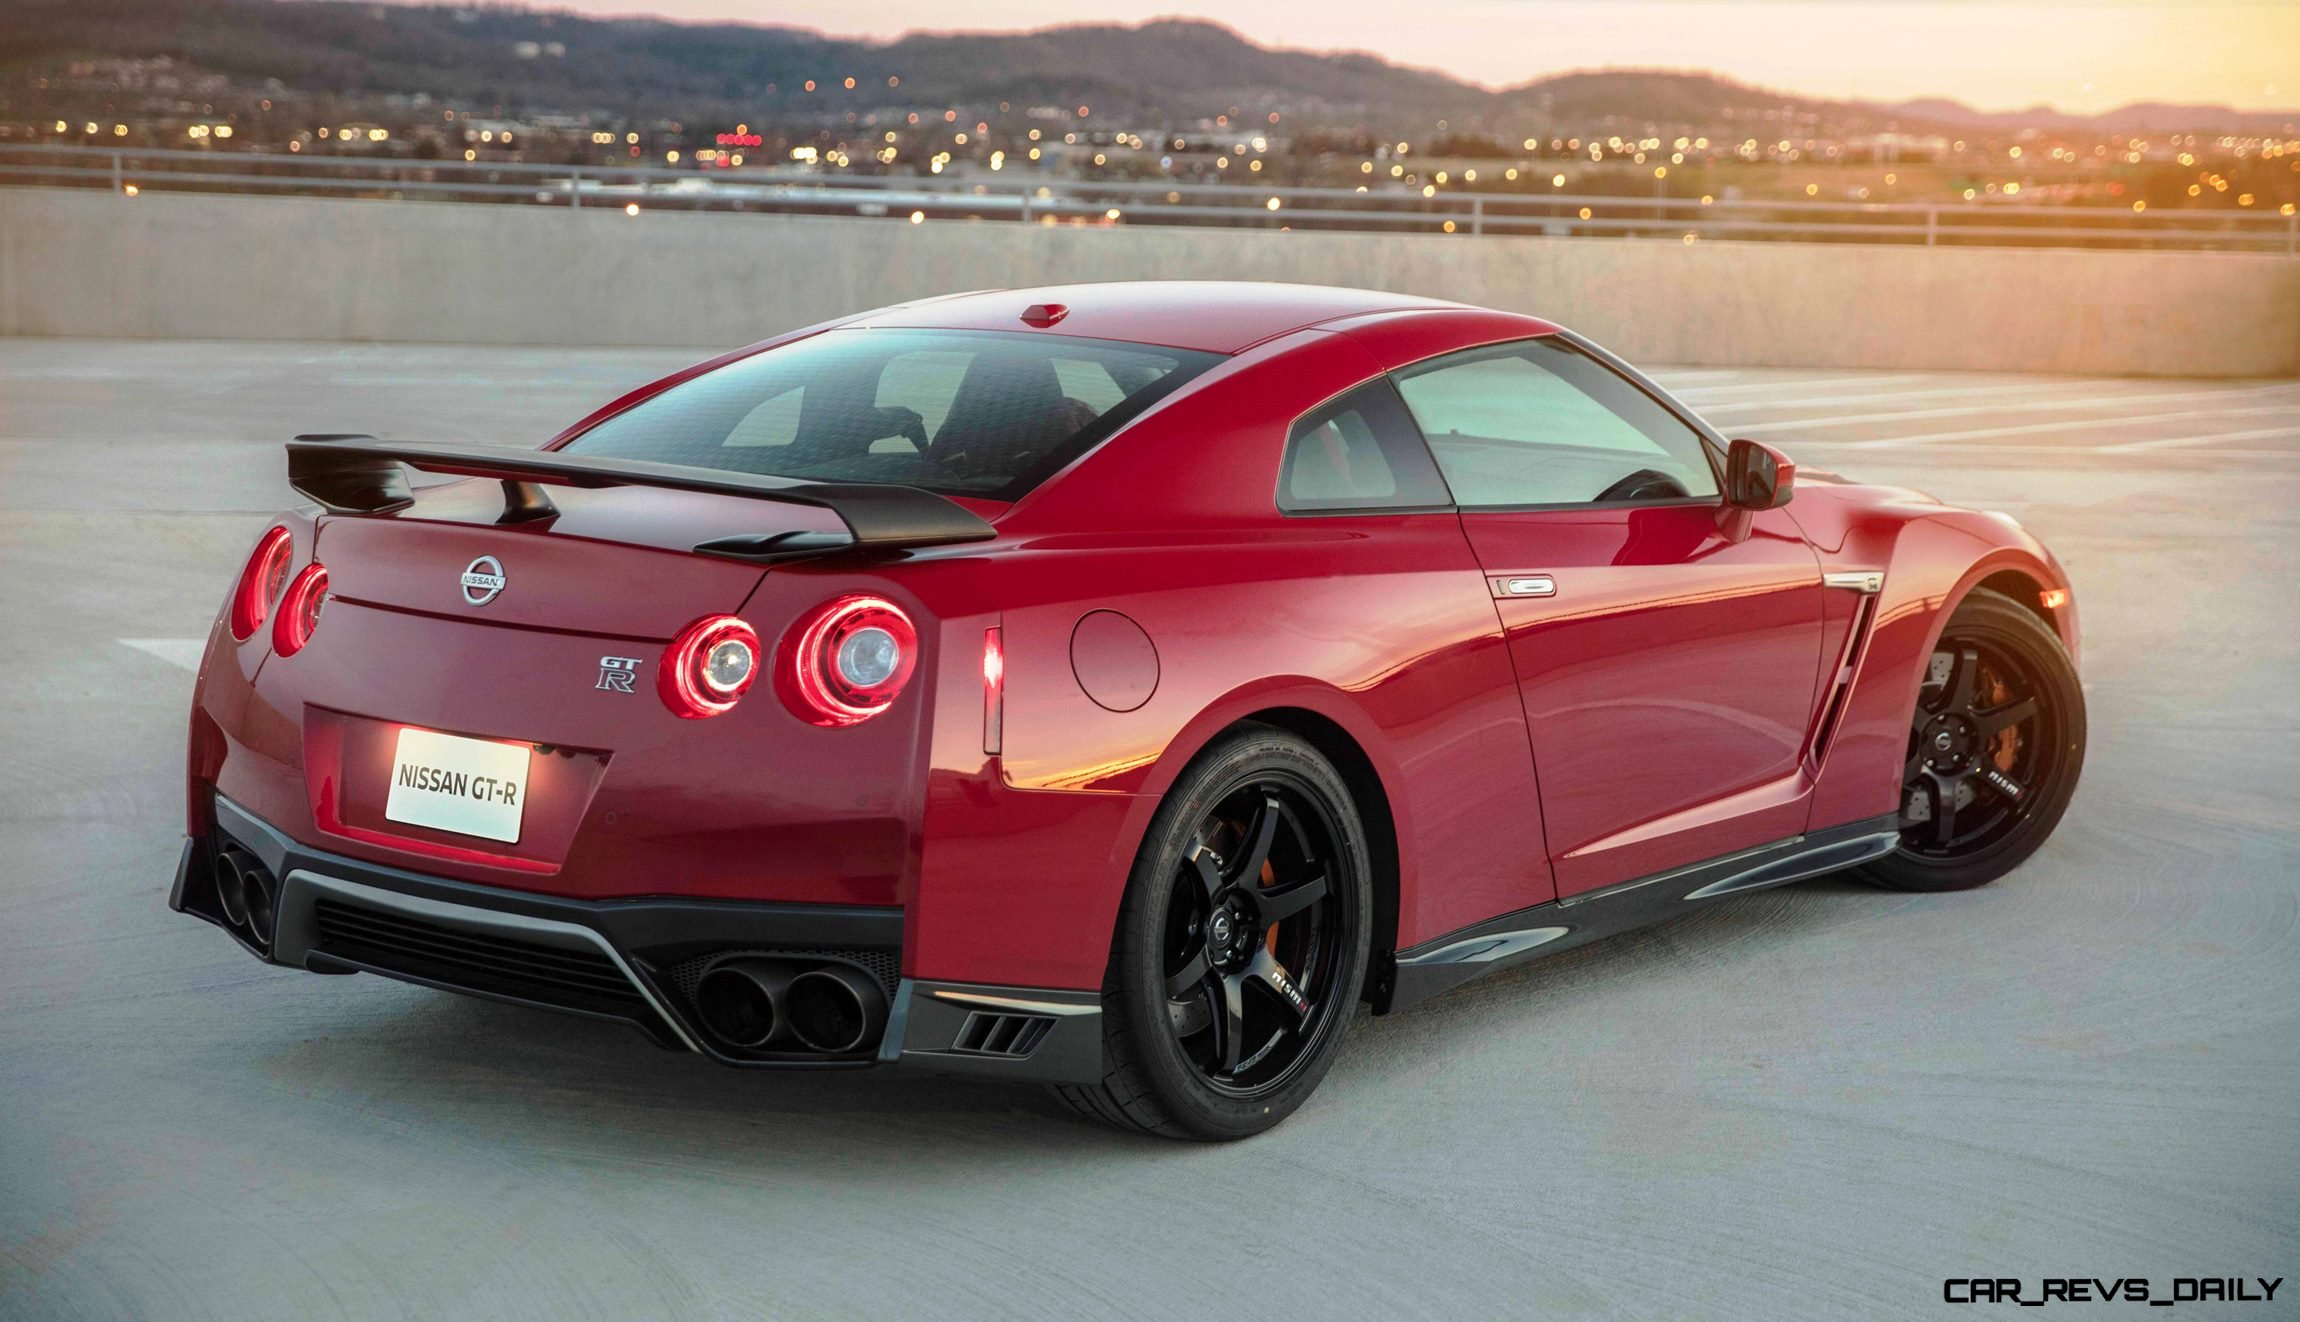 2018 nissan gt r track edition adds nismo grip widebody fenders and racier cabin. Black Bedroom Furniture Sets. Home Design Ideas